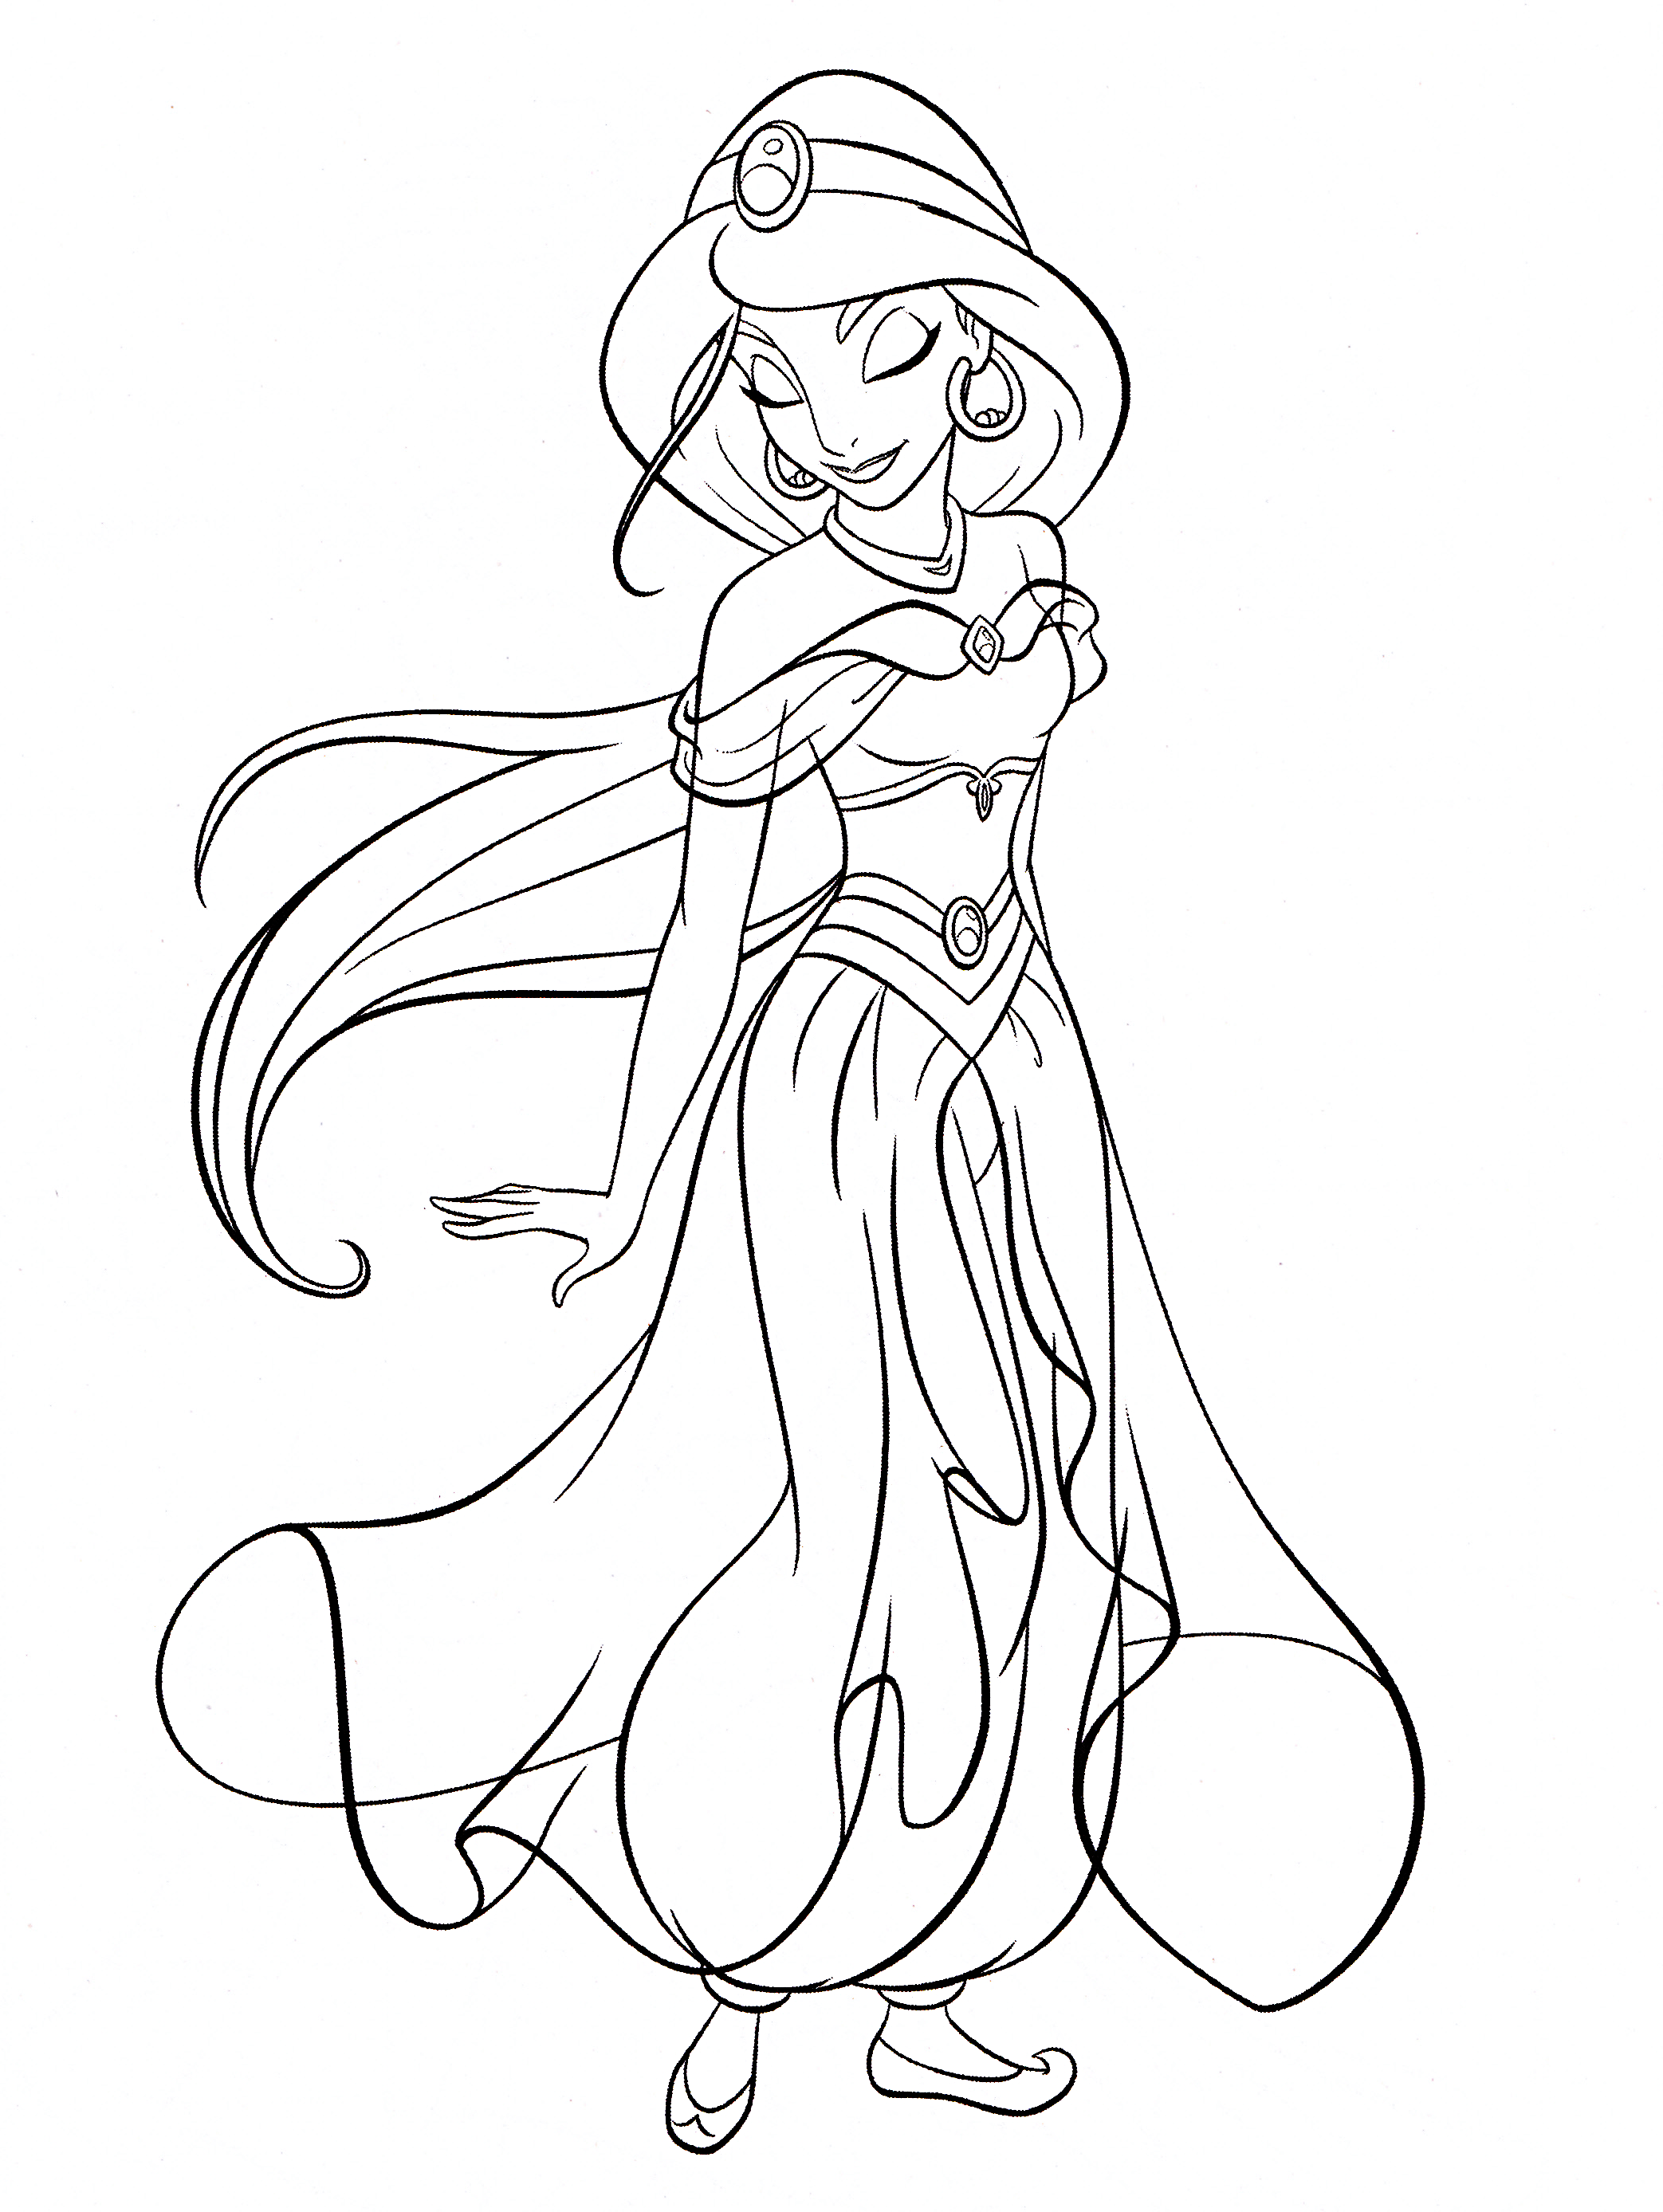 disney princess jasmine coloring pages - photo#7